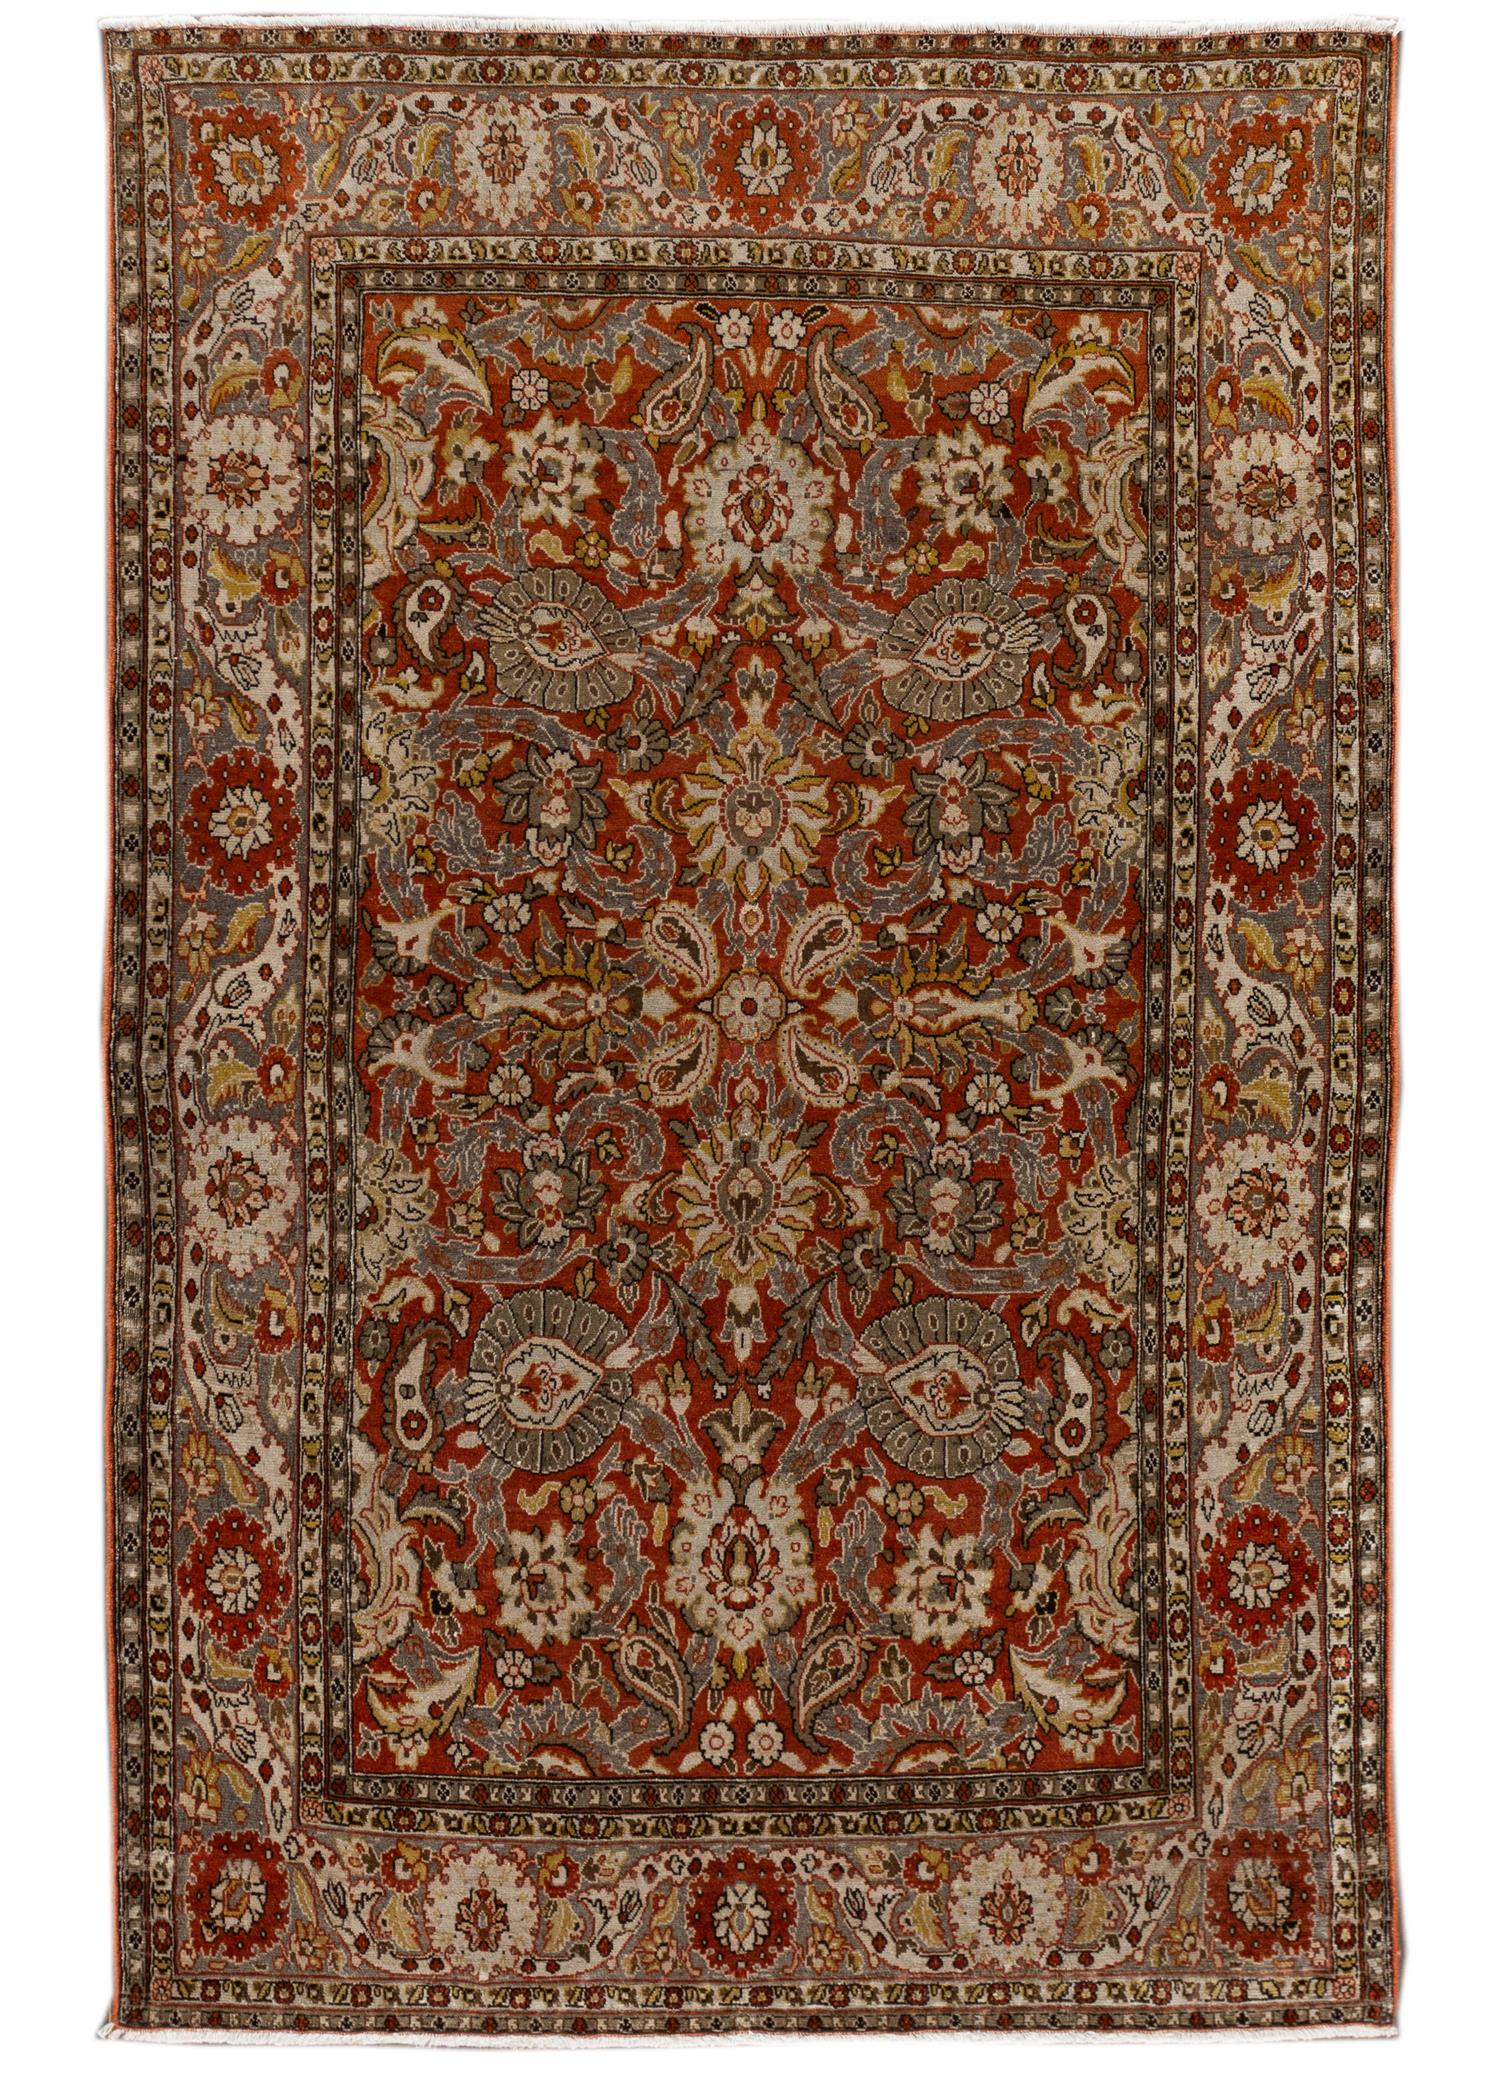 Antique Malayer Rug, #10235256, 4' x 7'